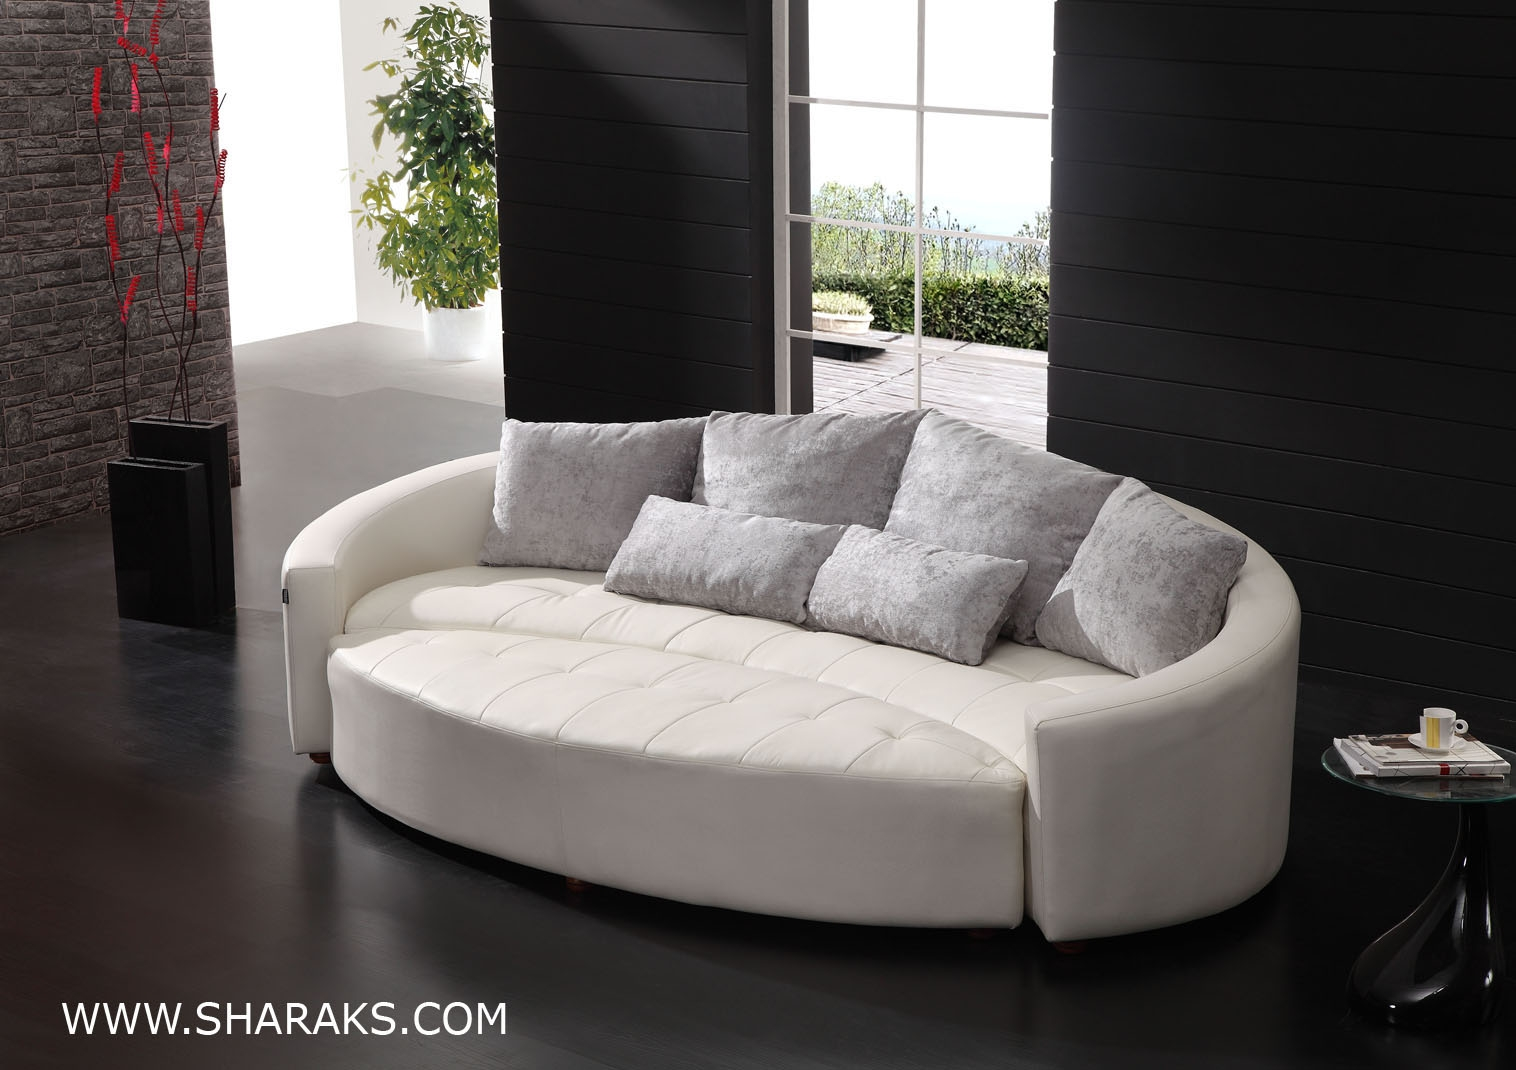 Stylish 1000 Images About Curved Couch Ideas On Pinterest Curved With Regard To Circular Sofa Chairs (Image 15 of 15)